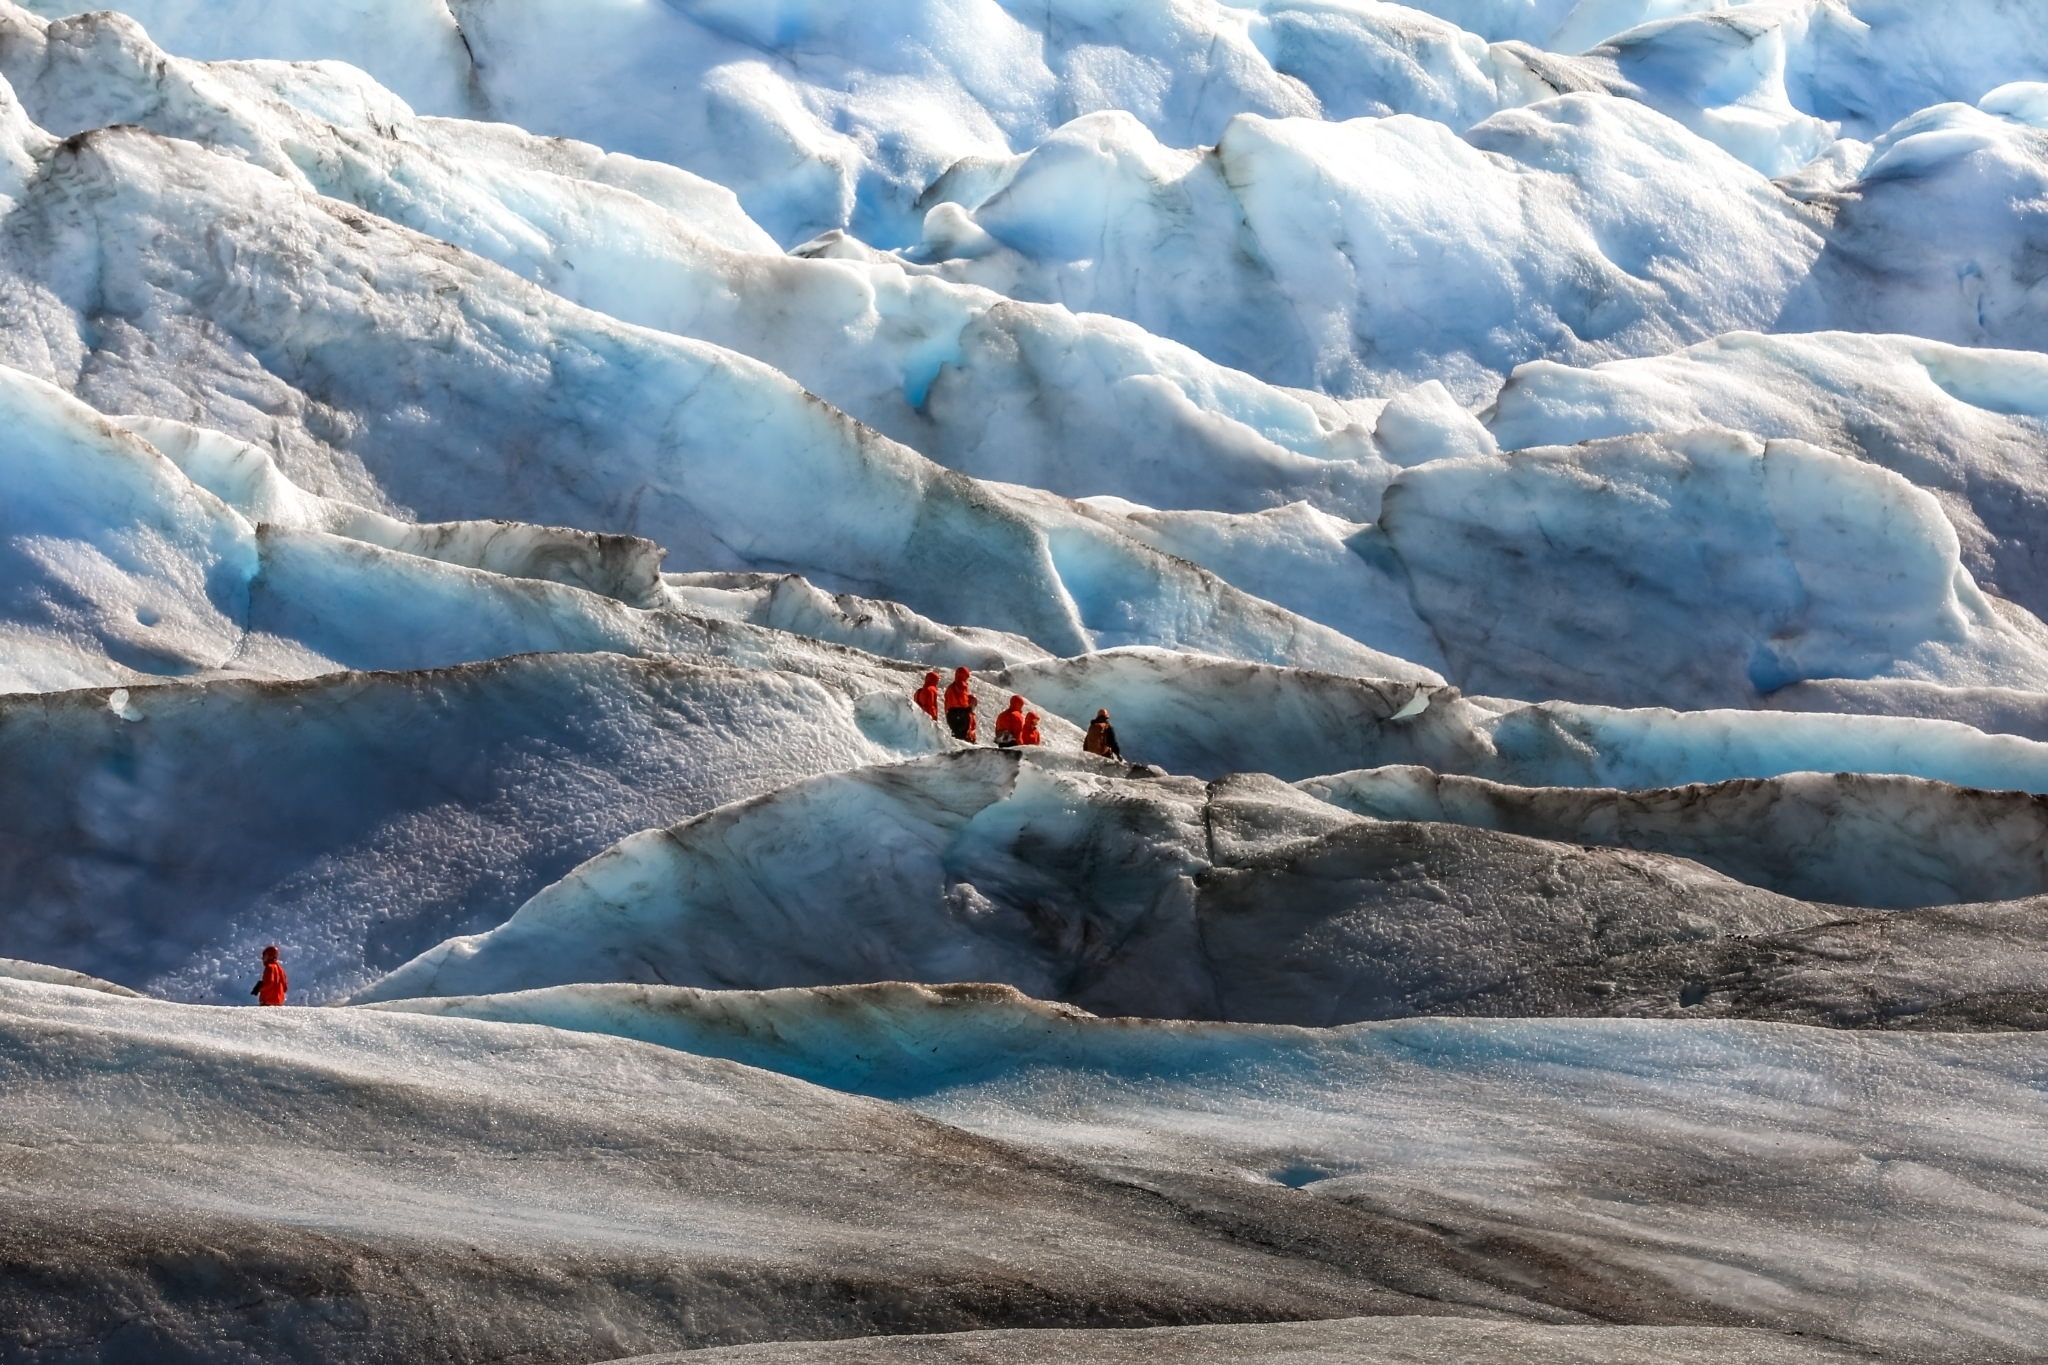 Hikers on a glacier by Martina Birnbaum